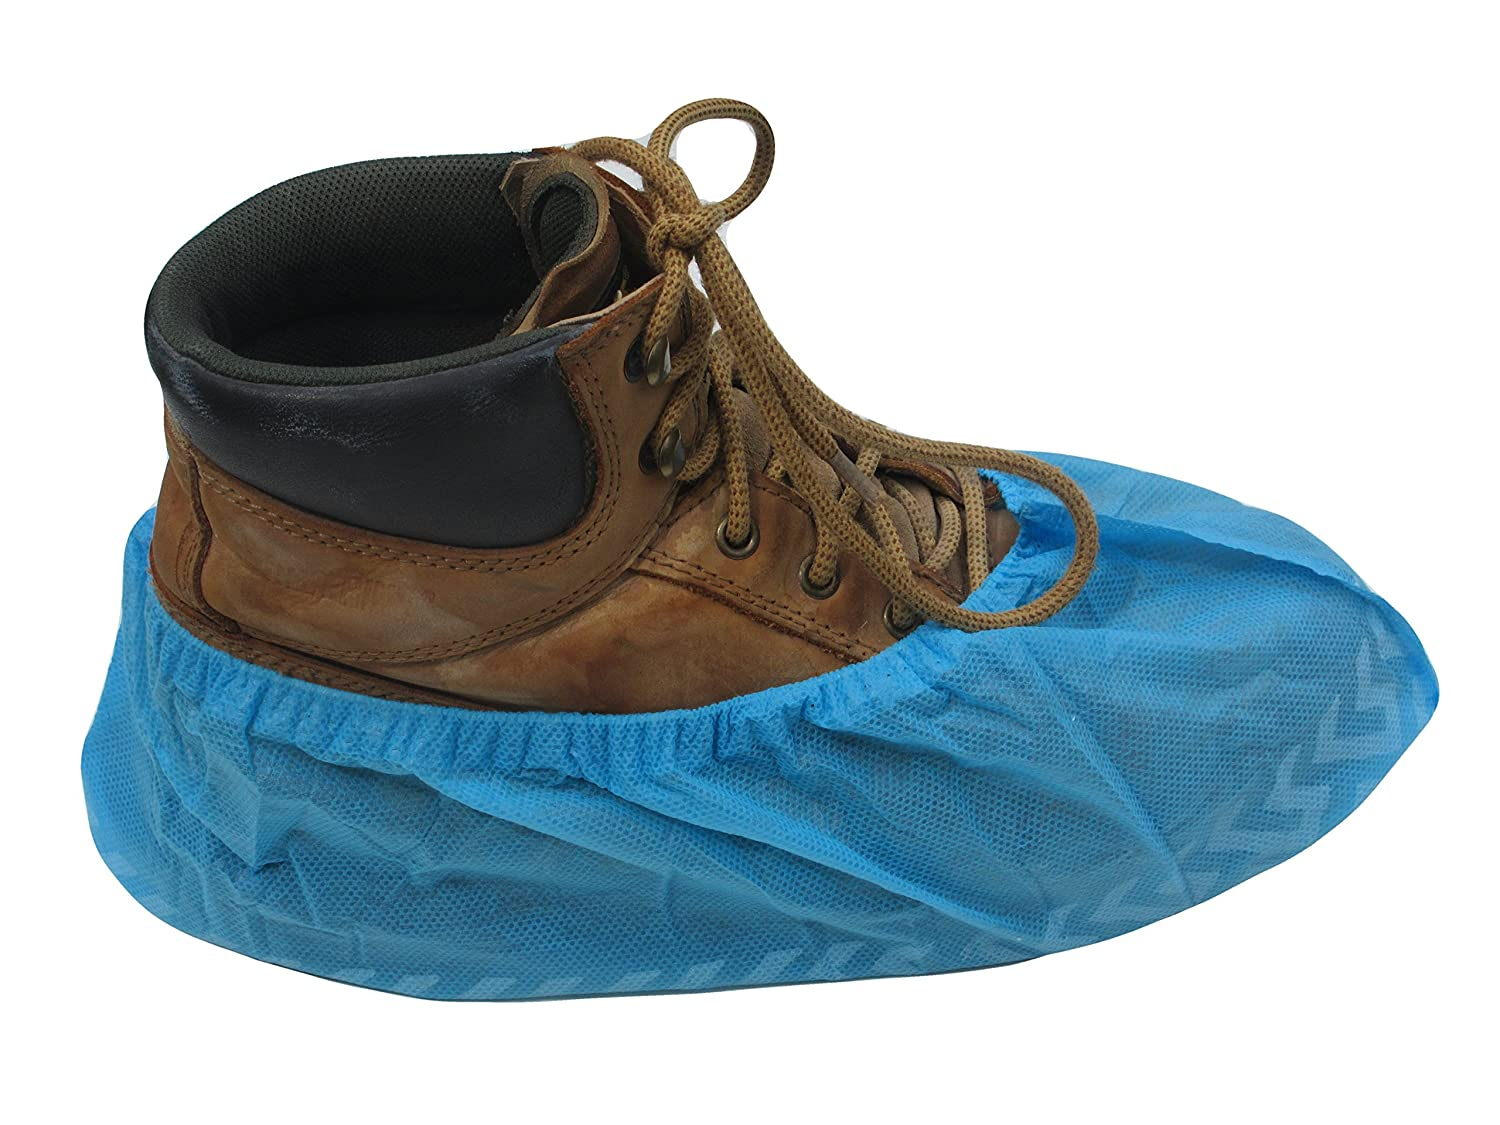 ProCES Shoe Cover - Non Slide - 100 Pack - Large - One Size Fits Most Shoes - Work Or On The Job Shoe and Floor Protection